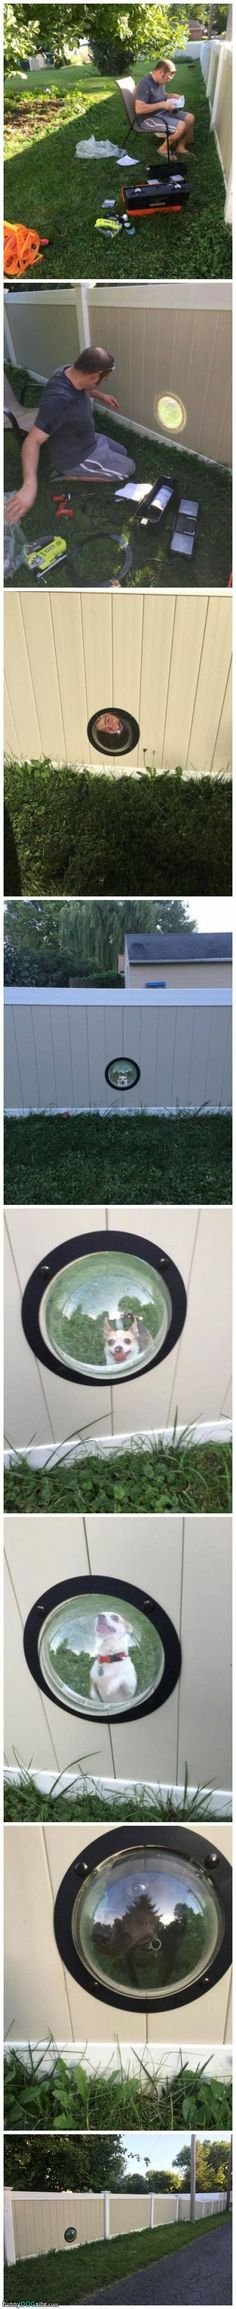 Fence With A Special Dog Window - funnydogsite.com #dogs #funny #cute